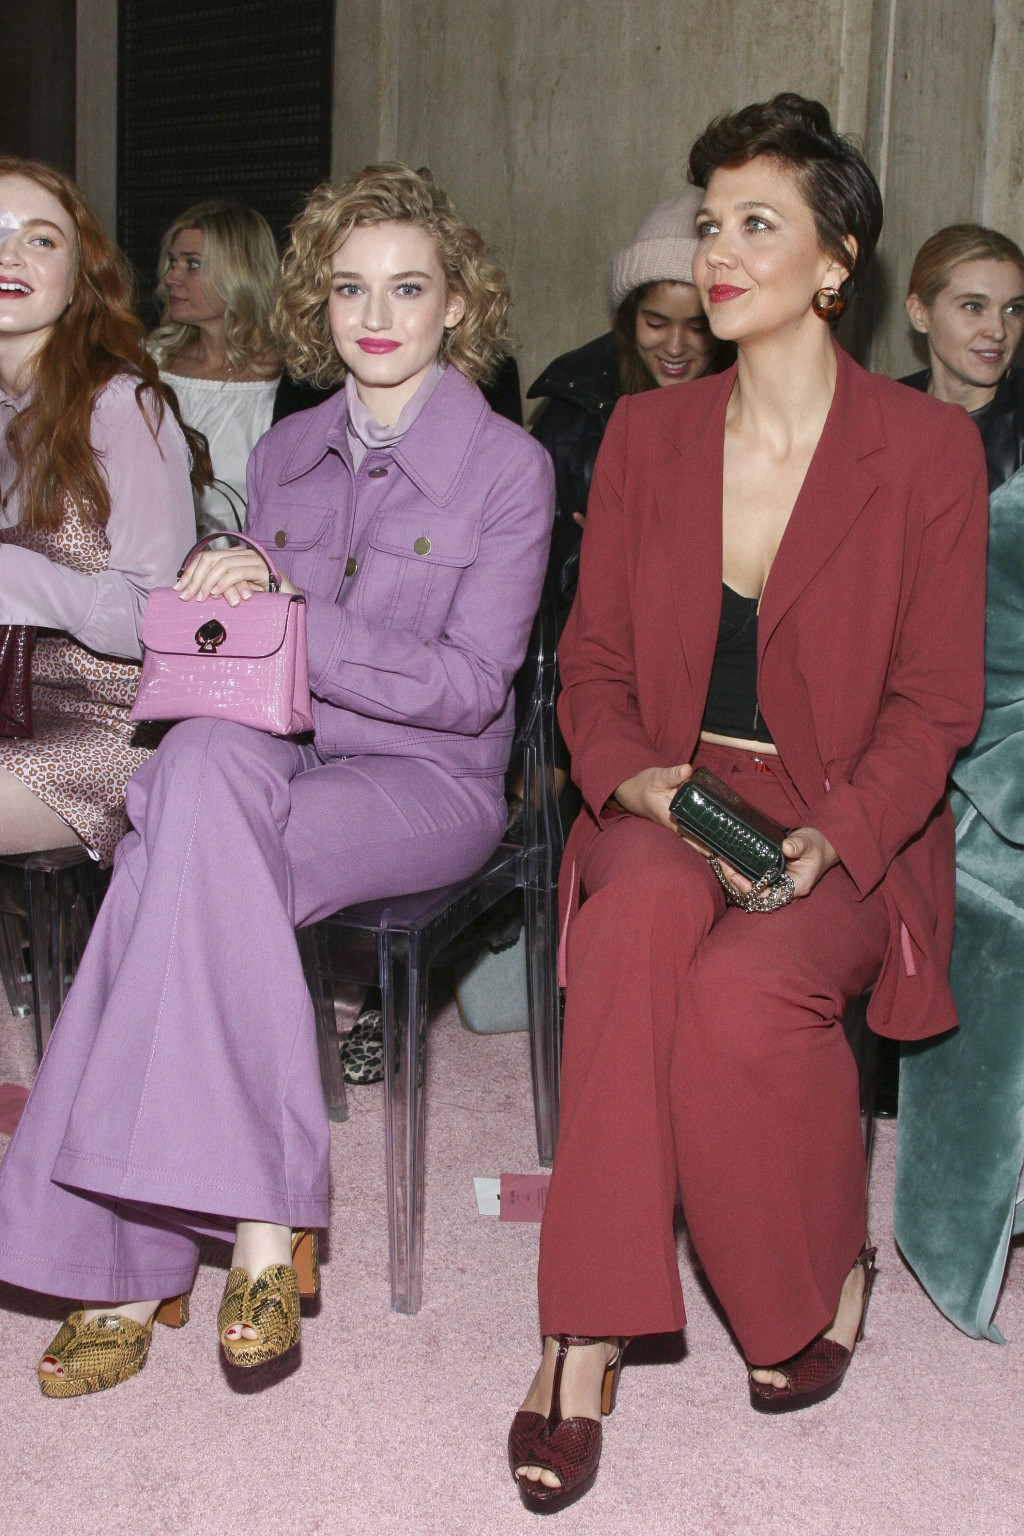 Julia Garner, left, and Maggie Gyllenhaal, right, attend the NYFW Fall/Winter 2019 Kate Spade fashion show at the Cipriani's on Friday, Feb. 8, 2019,